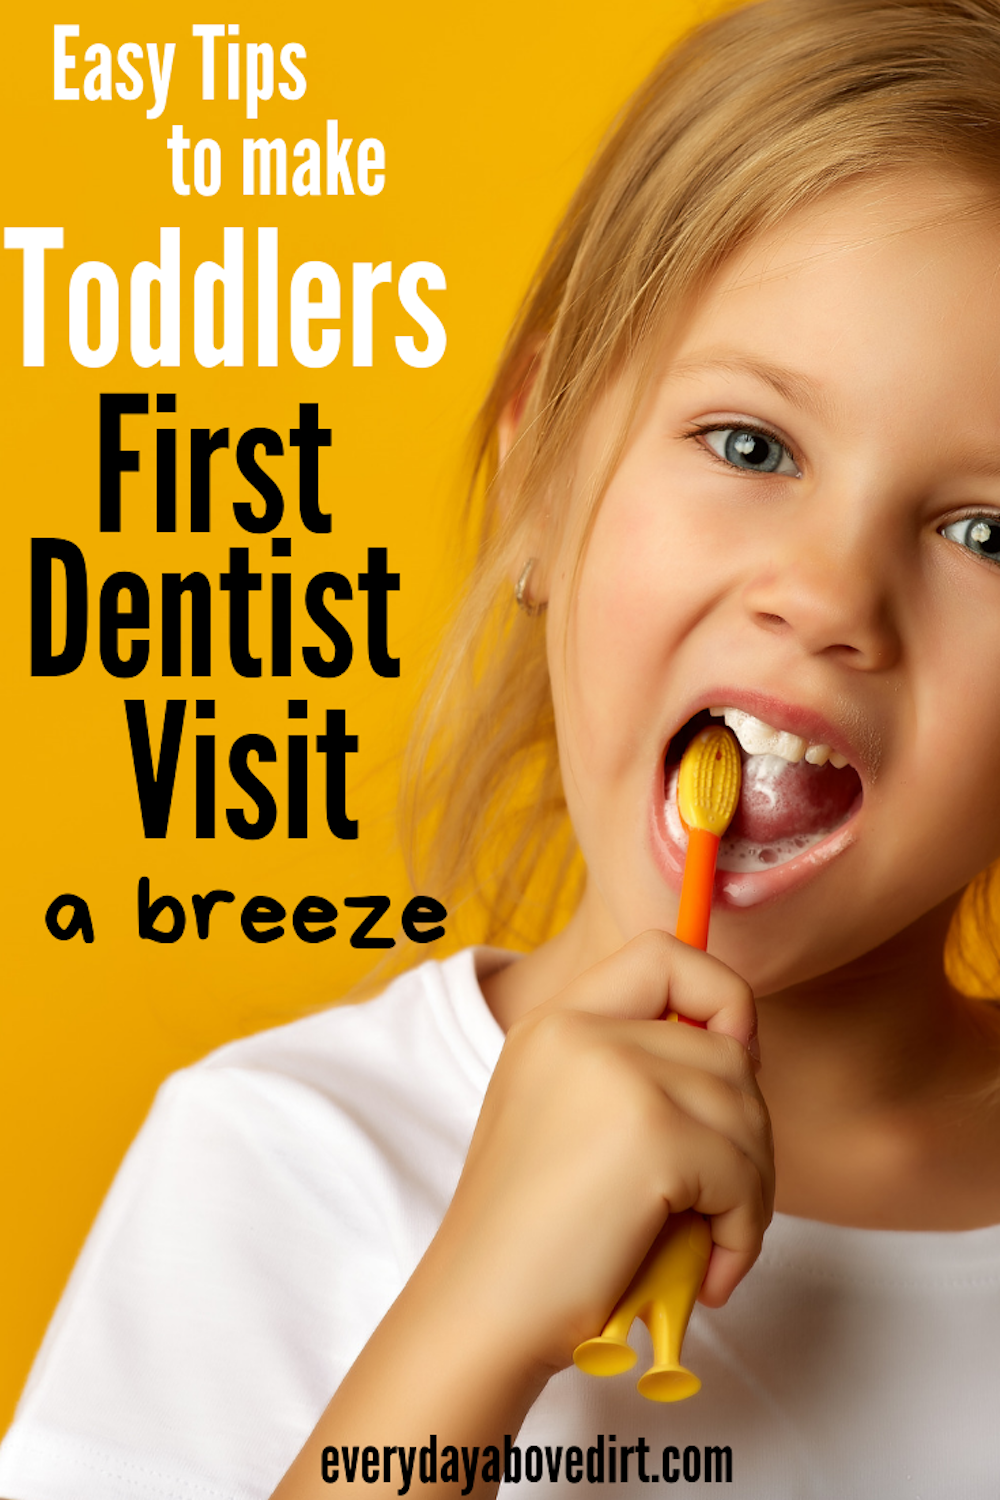 Toddlers First Dentist Visit